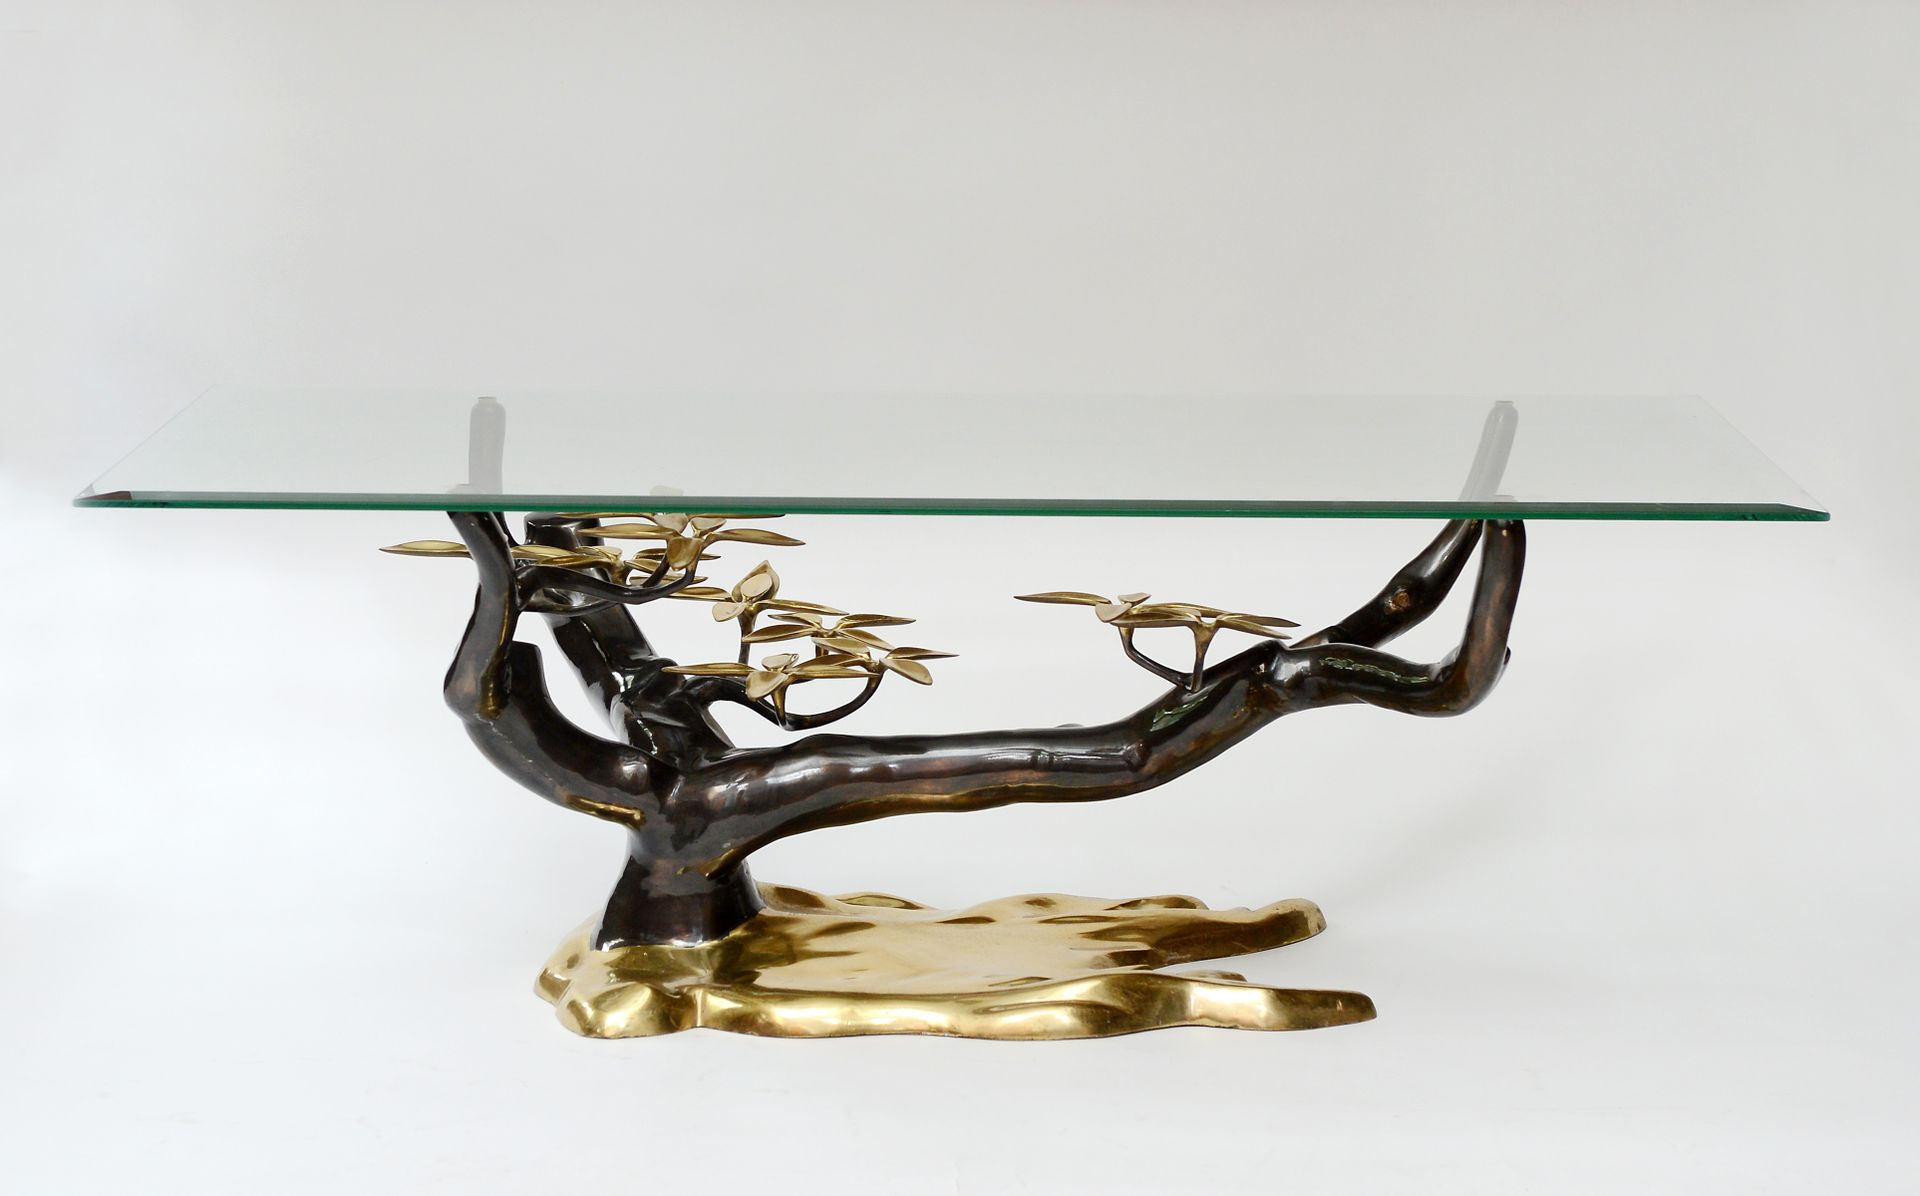 Bonsai Coffee Table by Willy Daro 1970s for sale at Pamono